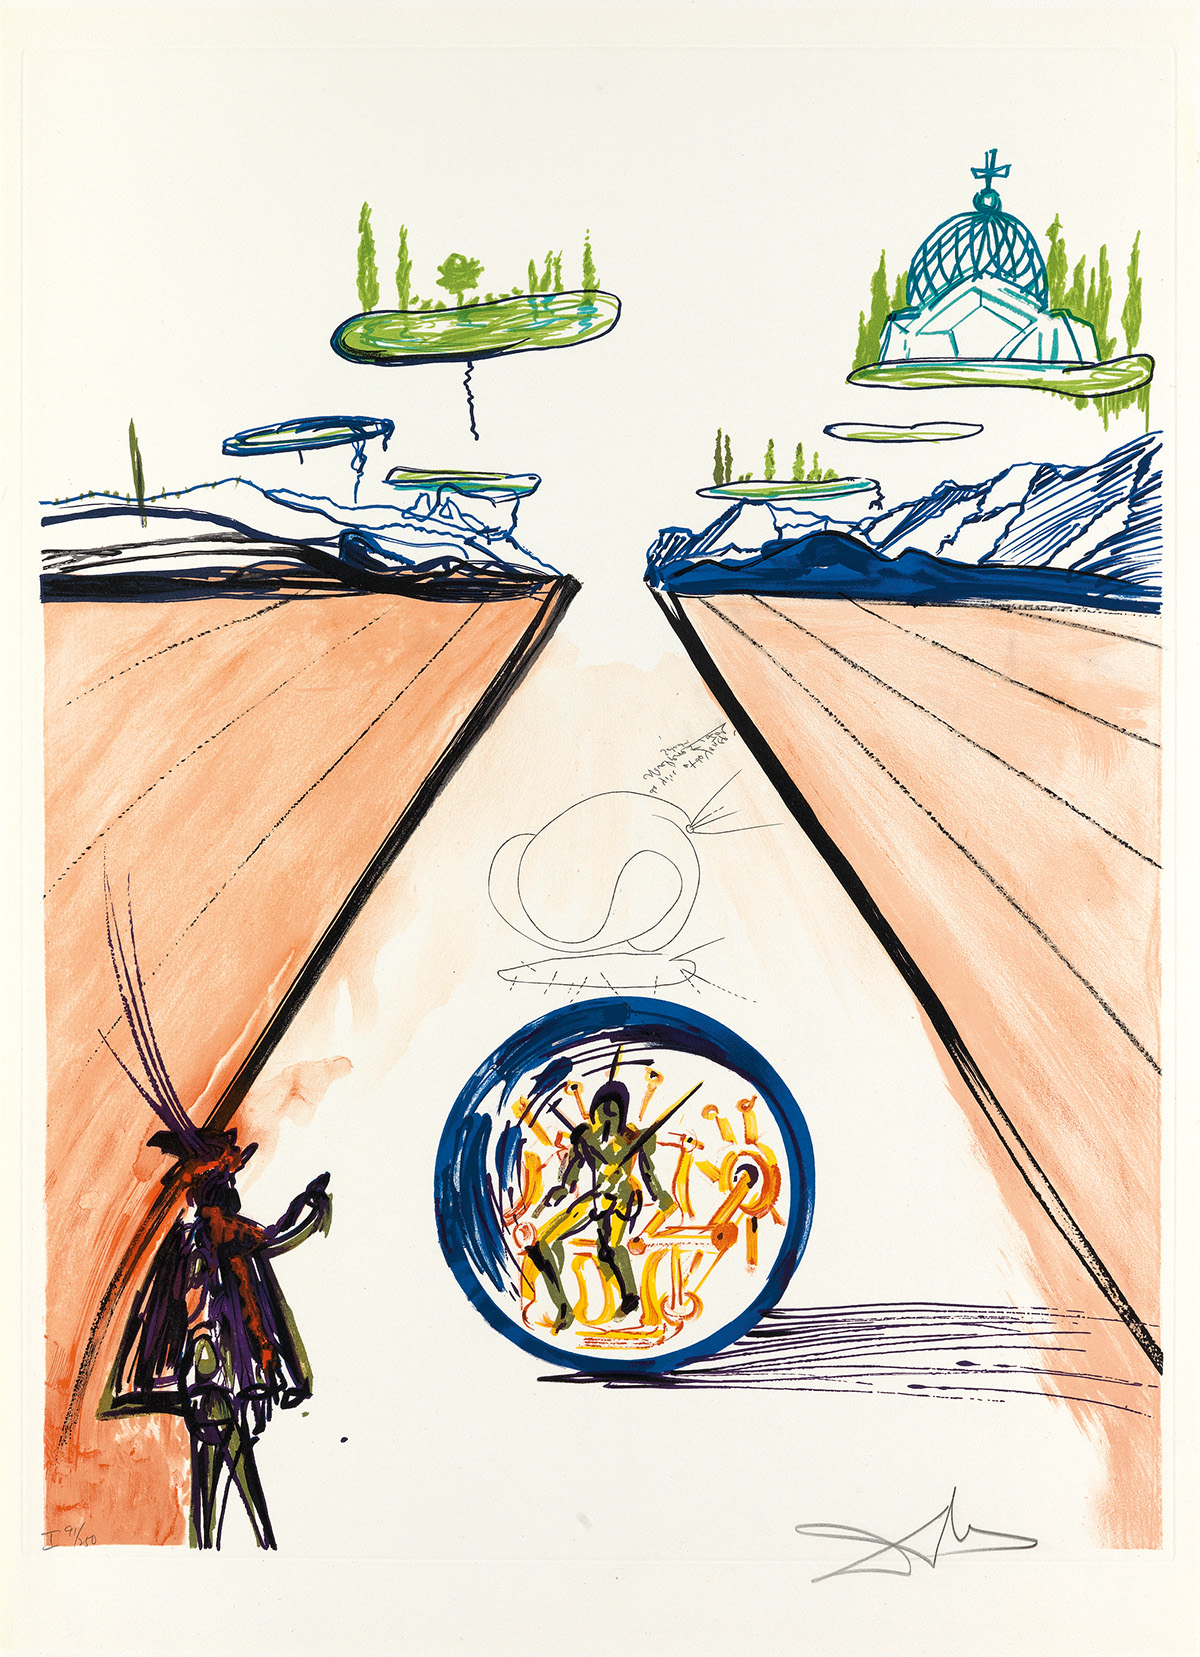 SALVADOR DALÍ Imaginations and Objects of the Future.